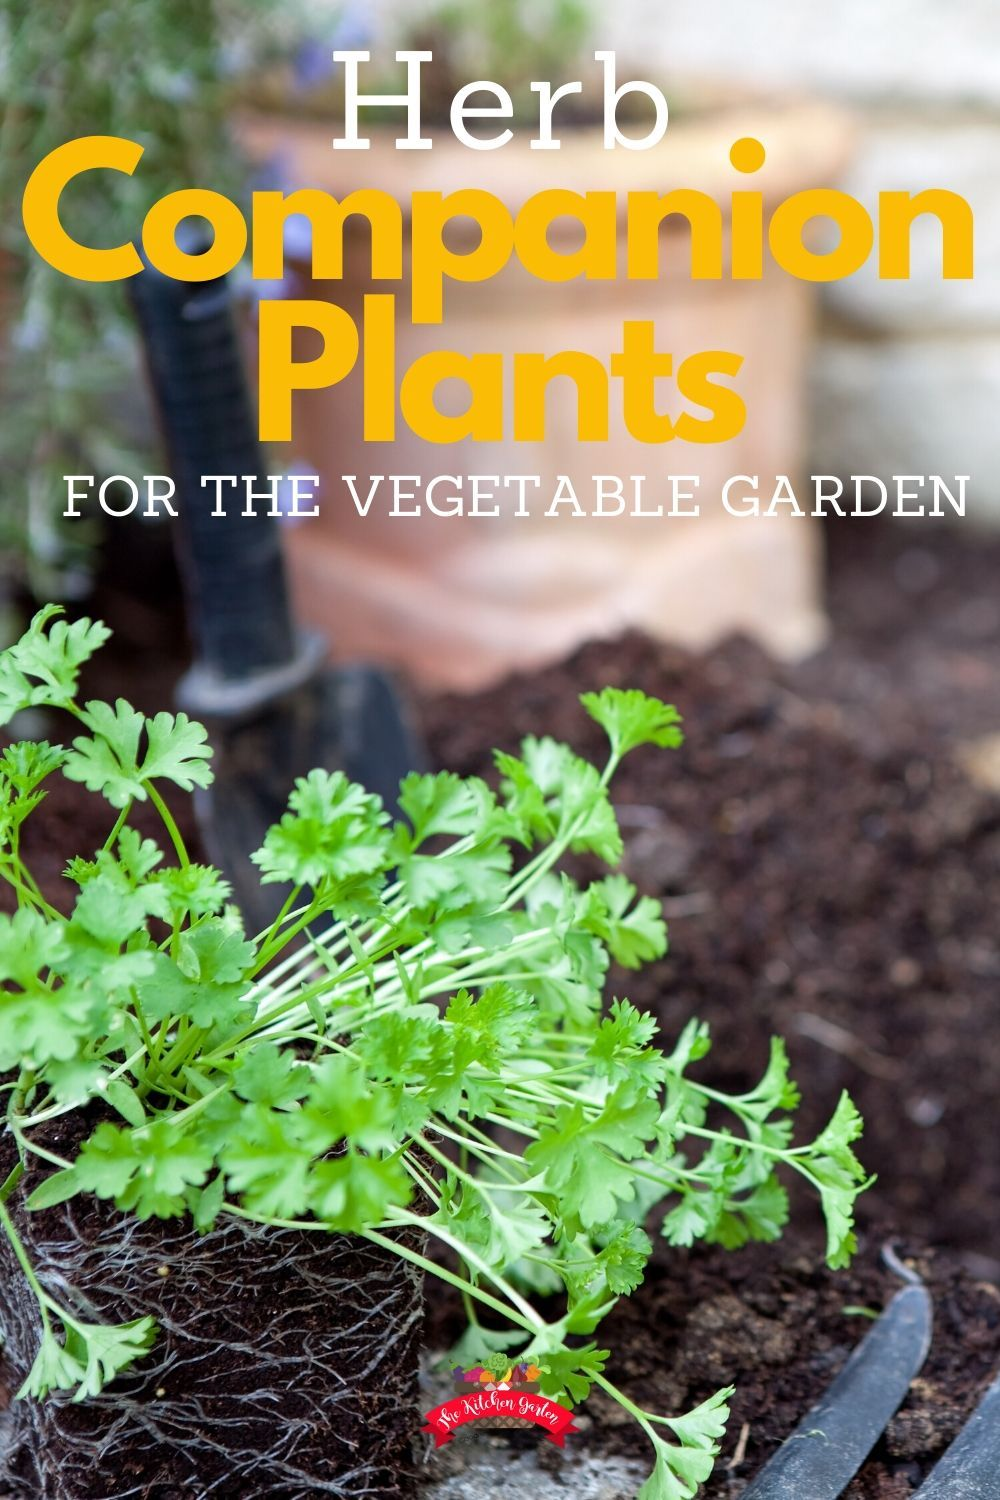 12 Great Tips For Starting A Kitchen Garden Every Beginner Should Know Starting A Vegetable Garden Veggie Garden Gardening For Beginners